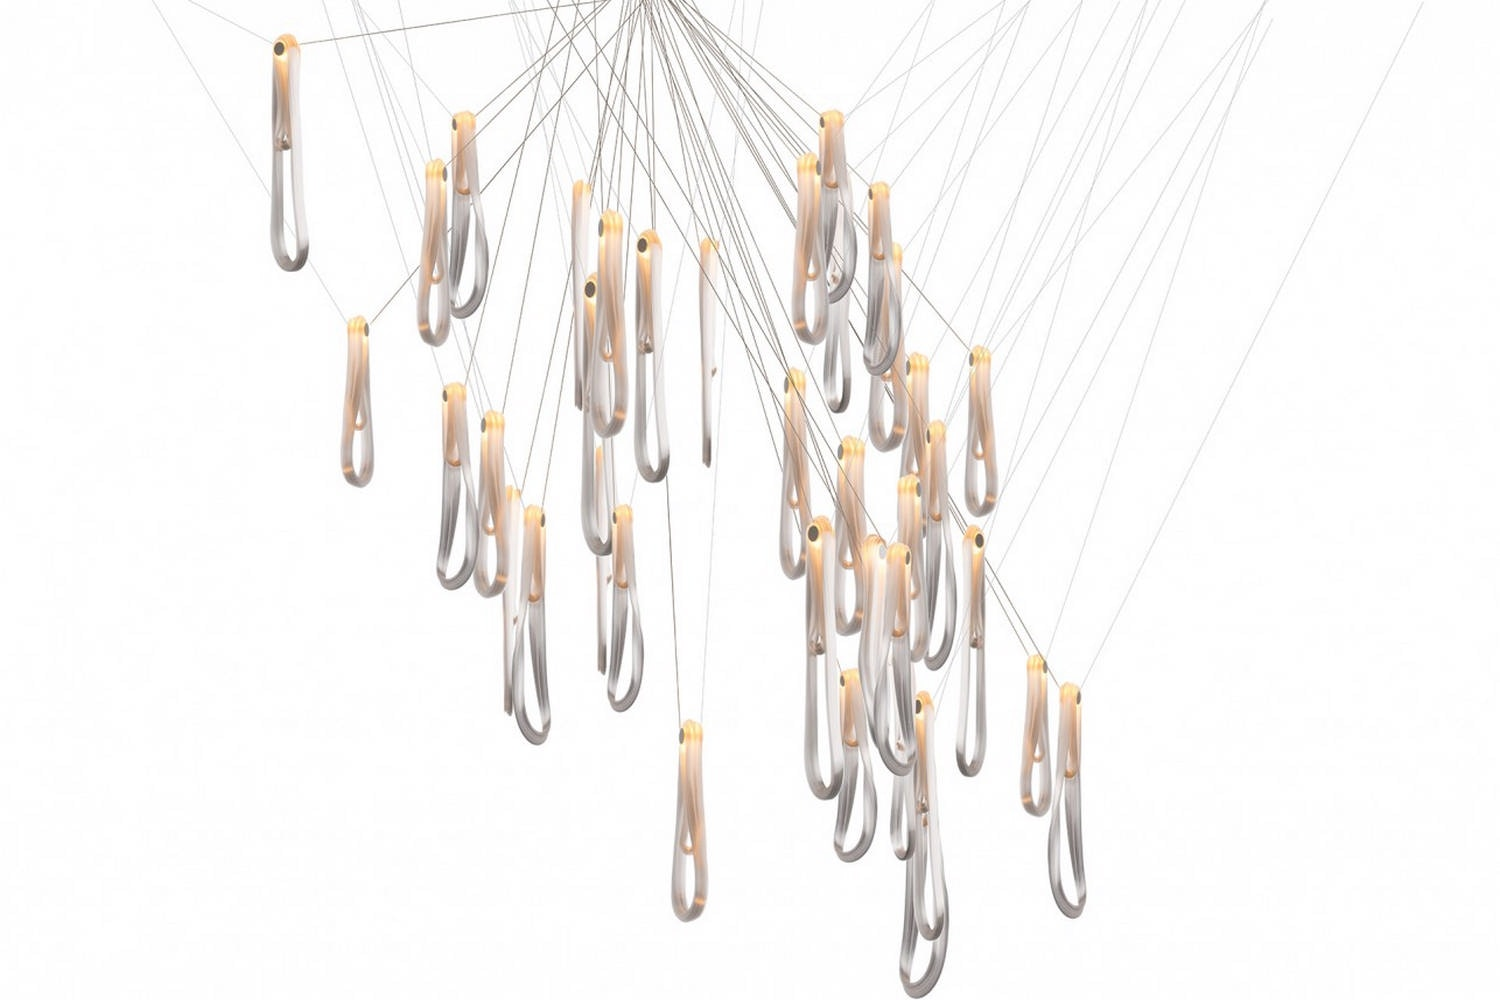 87.37 Suspension Lamp by Omer Arbel for Bocci